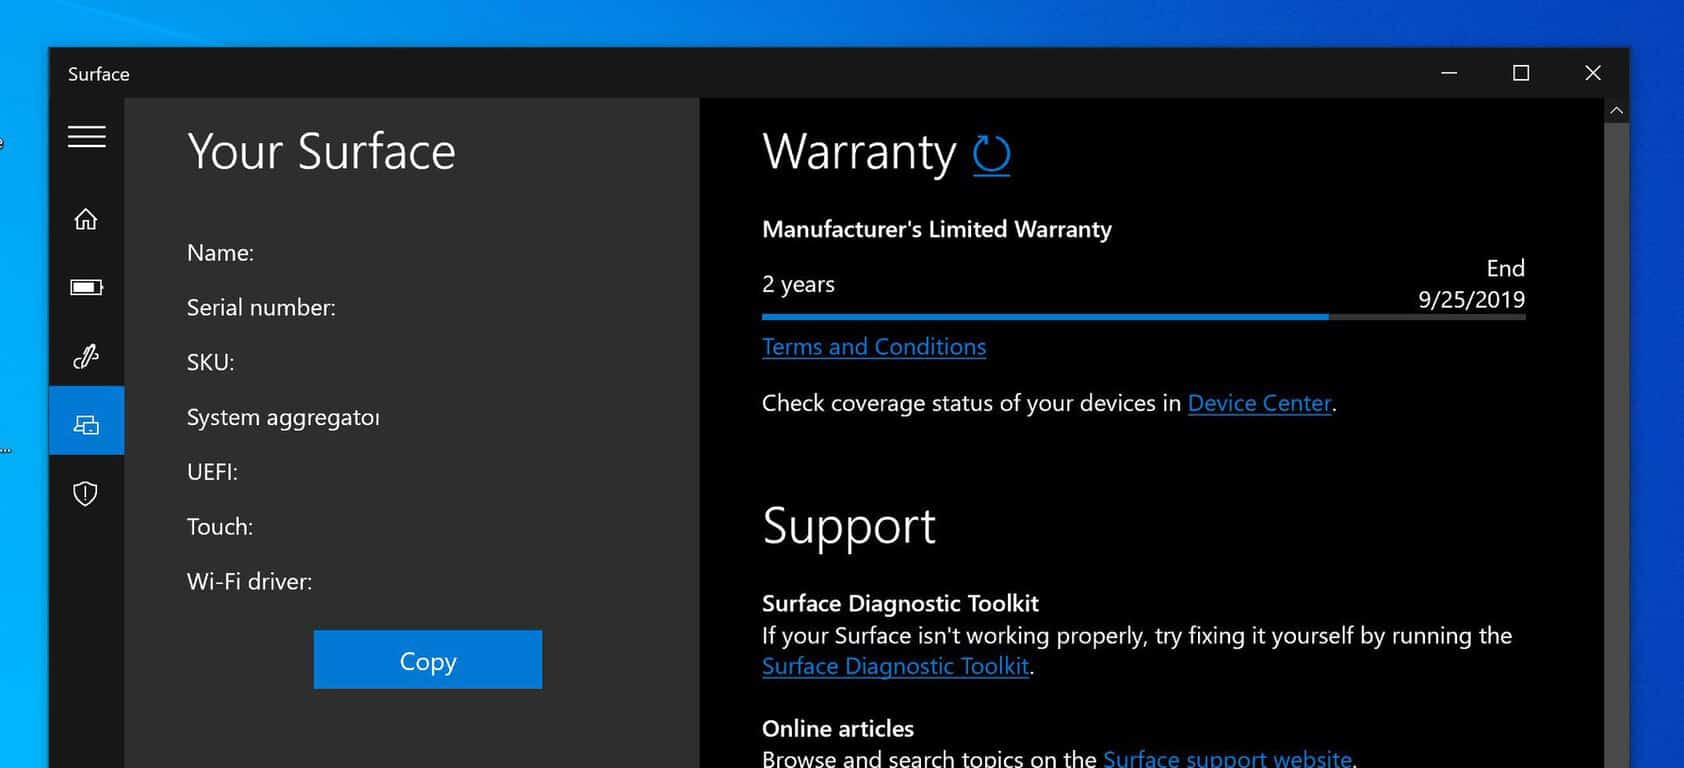 Windows 10 surface app now tells users when their warranty ends - onmsft. Com - march 22, 2019